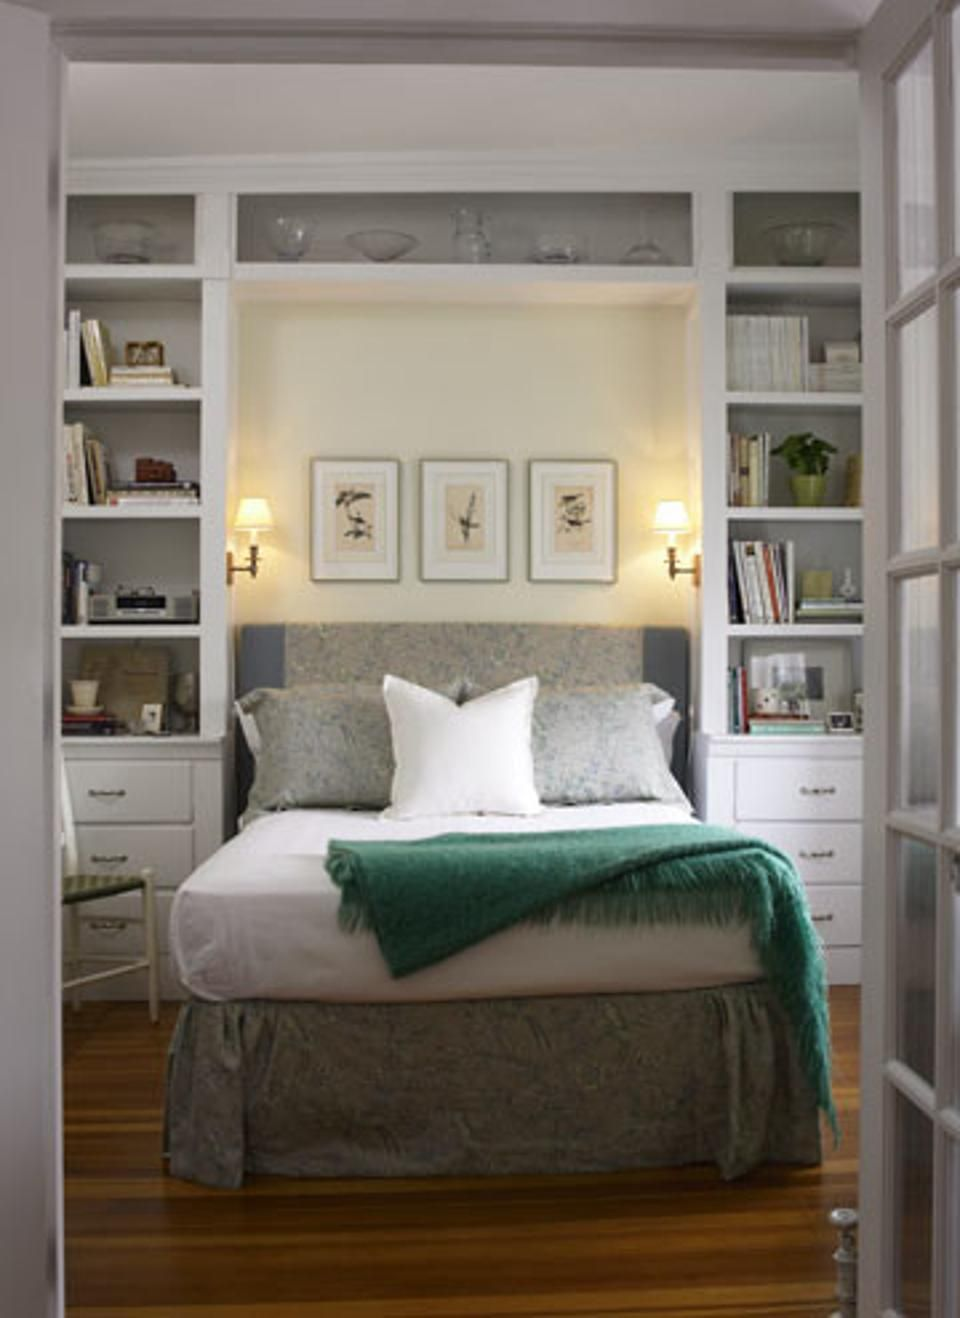 10 tips to make a small bedroom look great compact Bedroom design for small space